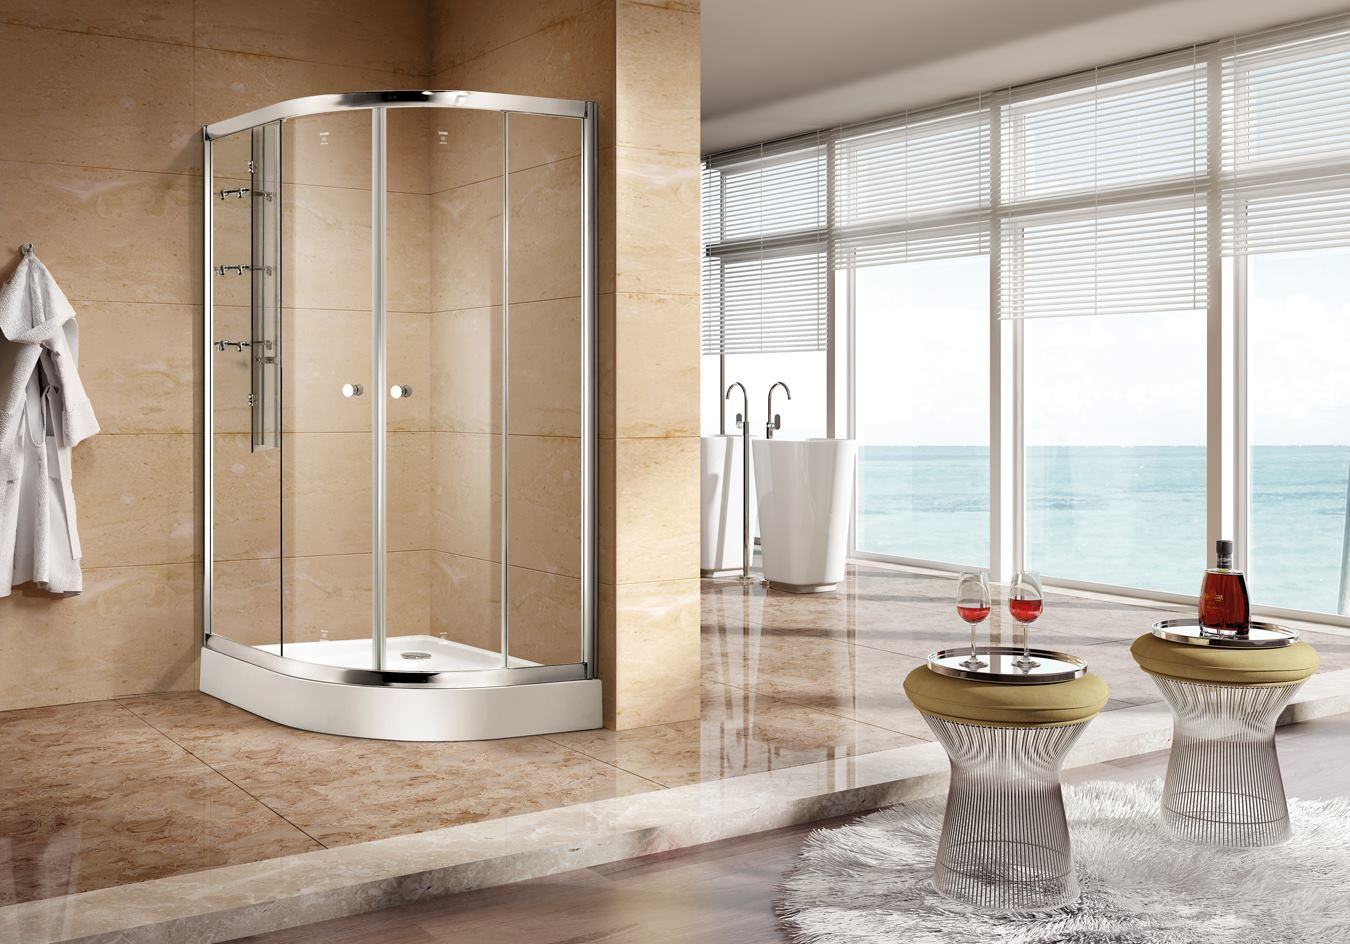 Buy Custom Glass Shower Doors And Shower Enclosures For Residential - Commercial bathroom enclosures